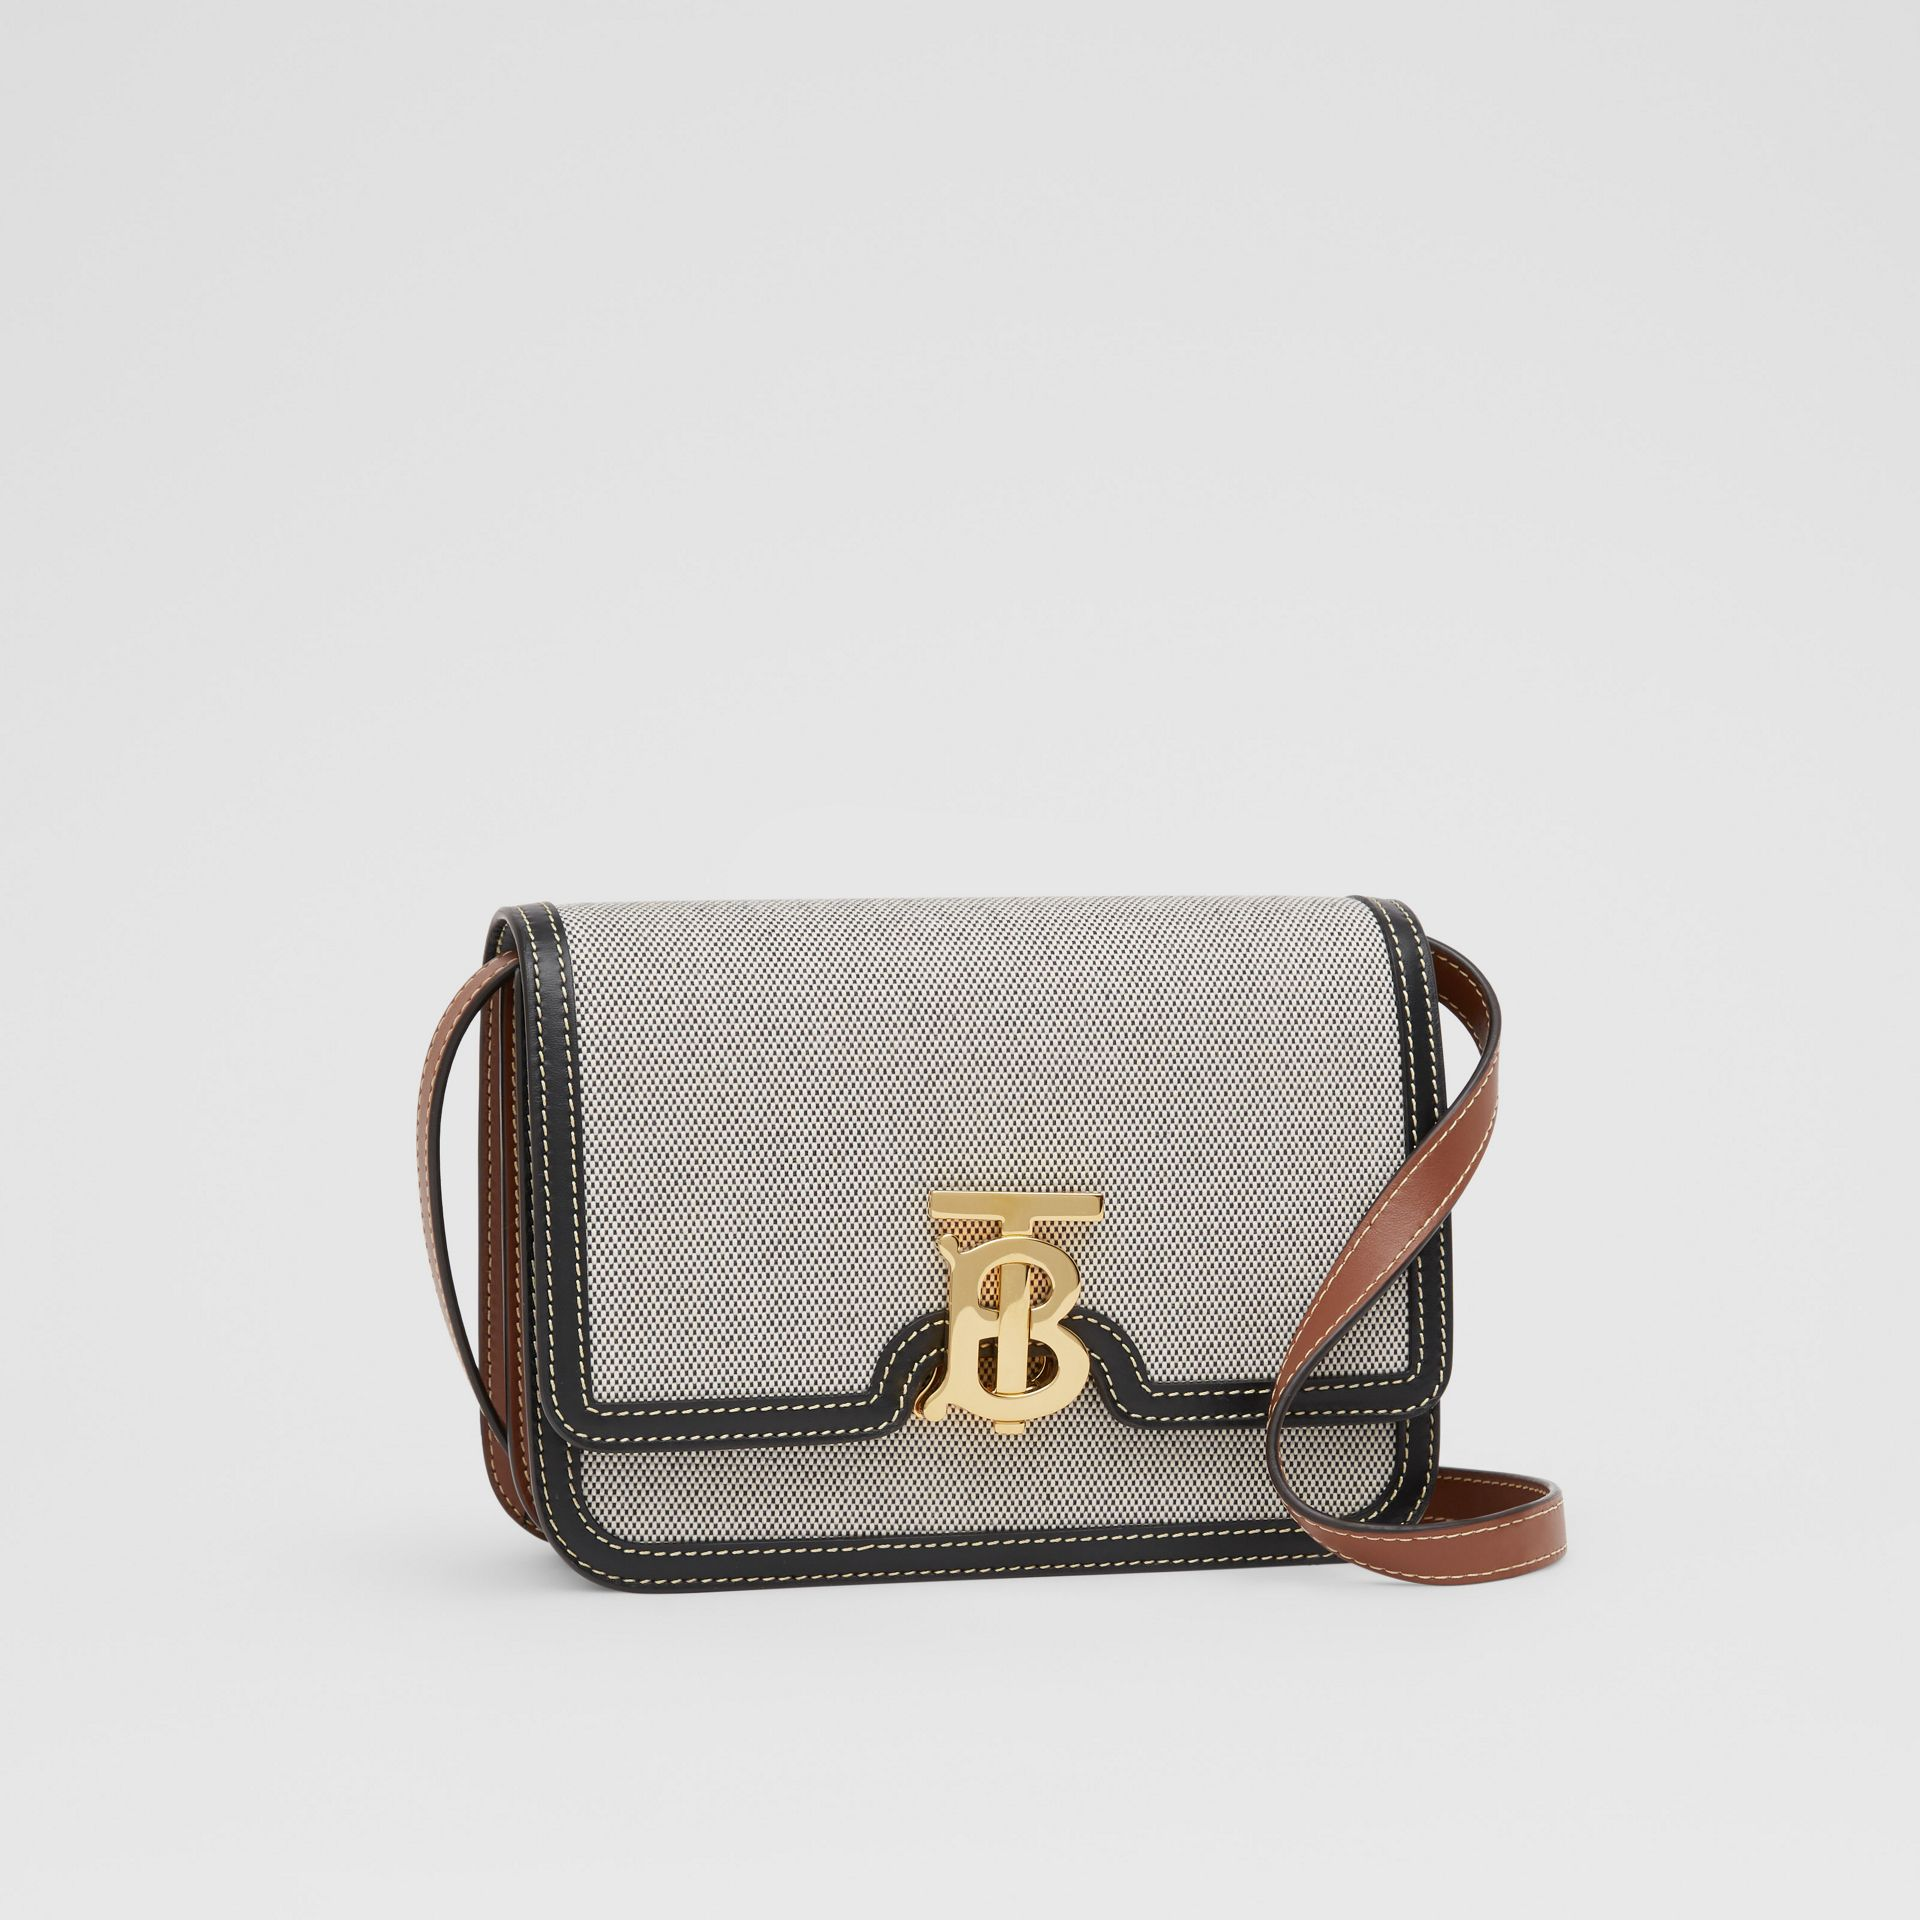 Small Tri-tone Canvas and Leather TB Bag in Black/tan - Women | Burberry United States - gallery image 6